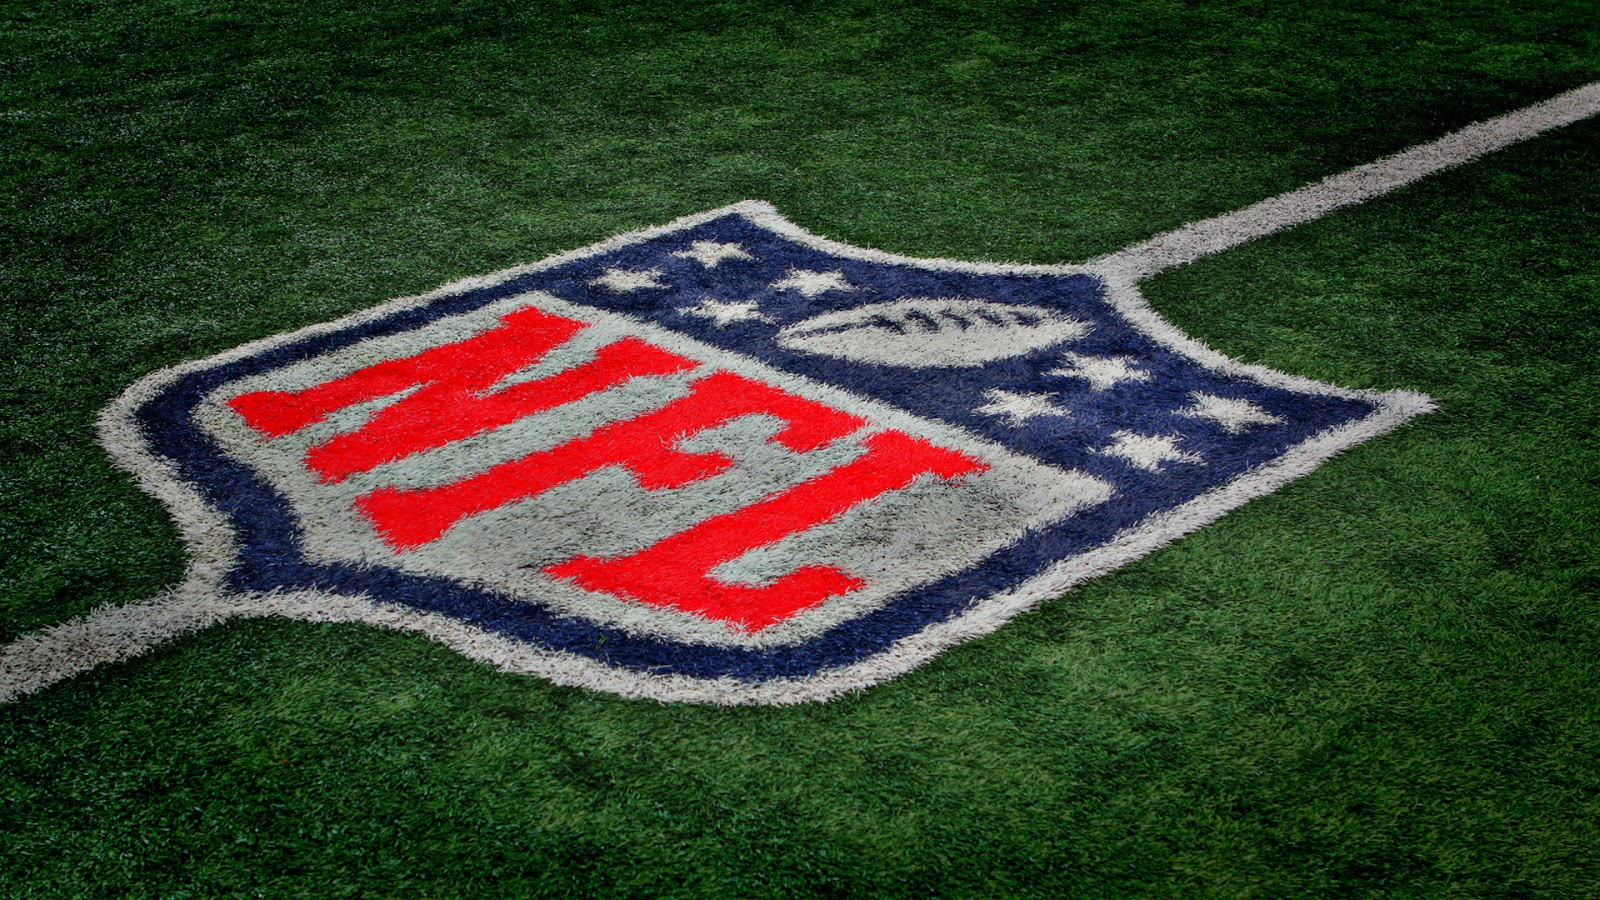 NFL 2012 - Free Download NFL Football HD Wallpapers for iPad and Nexus 7   Tips and News about ...